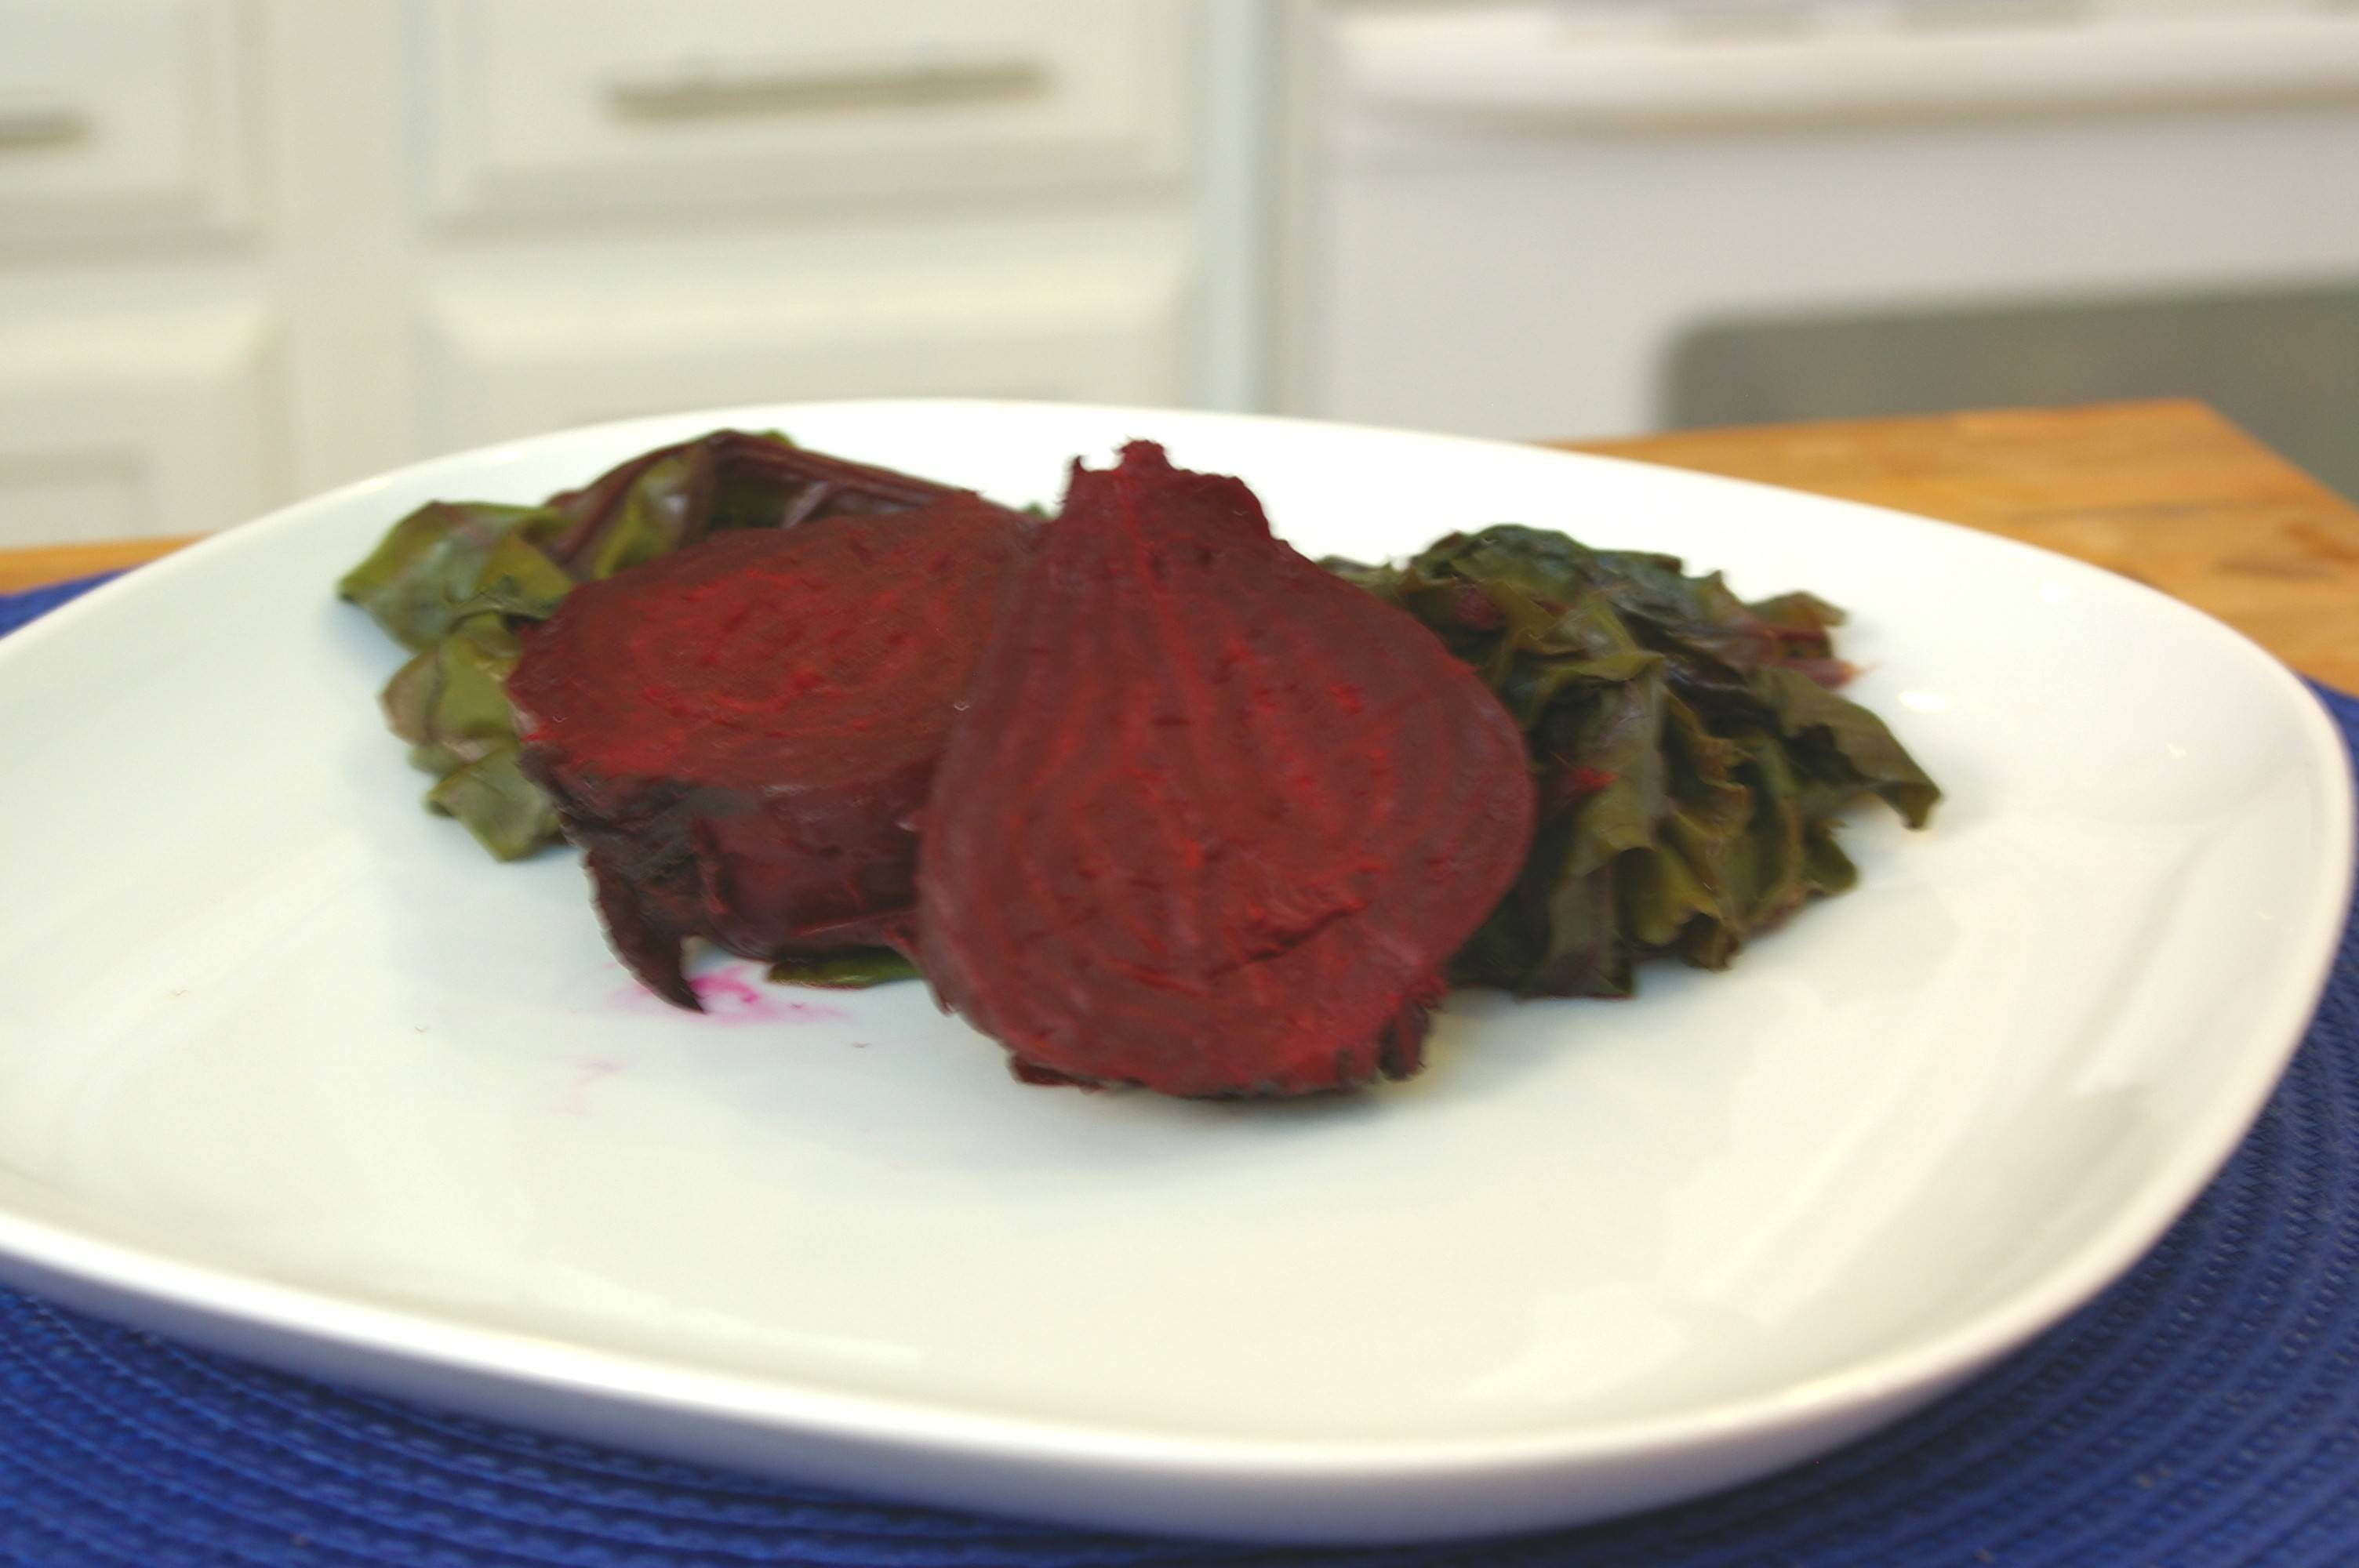 Wrapped in foil then baked in the oven, beets become a delicious, nutritious side dish.